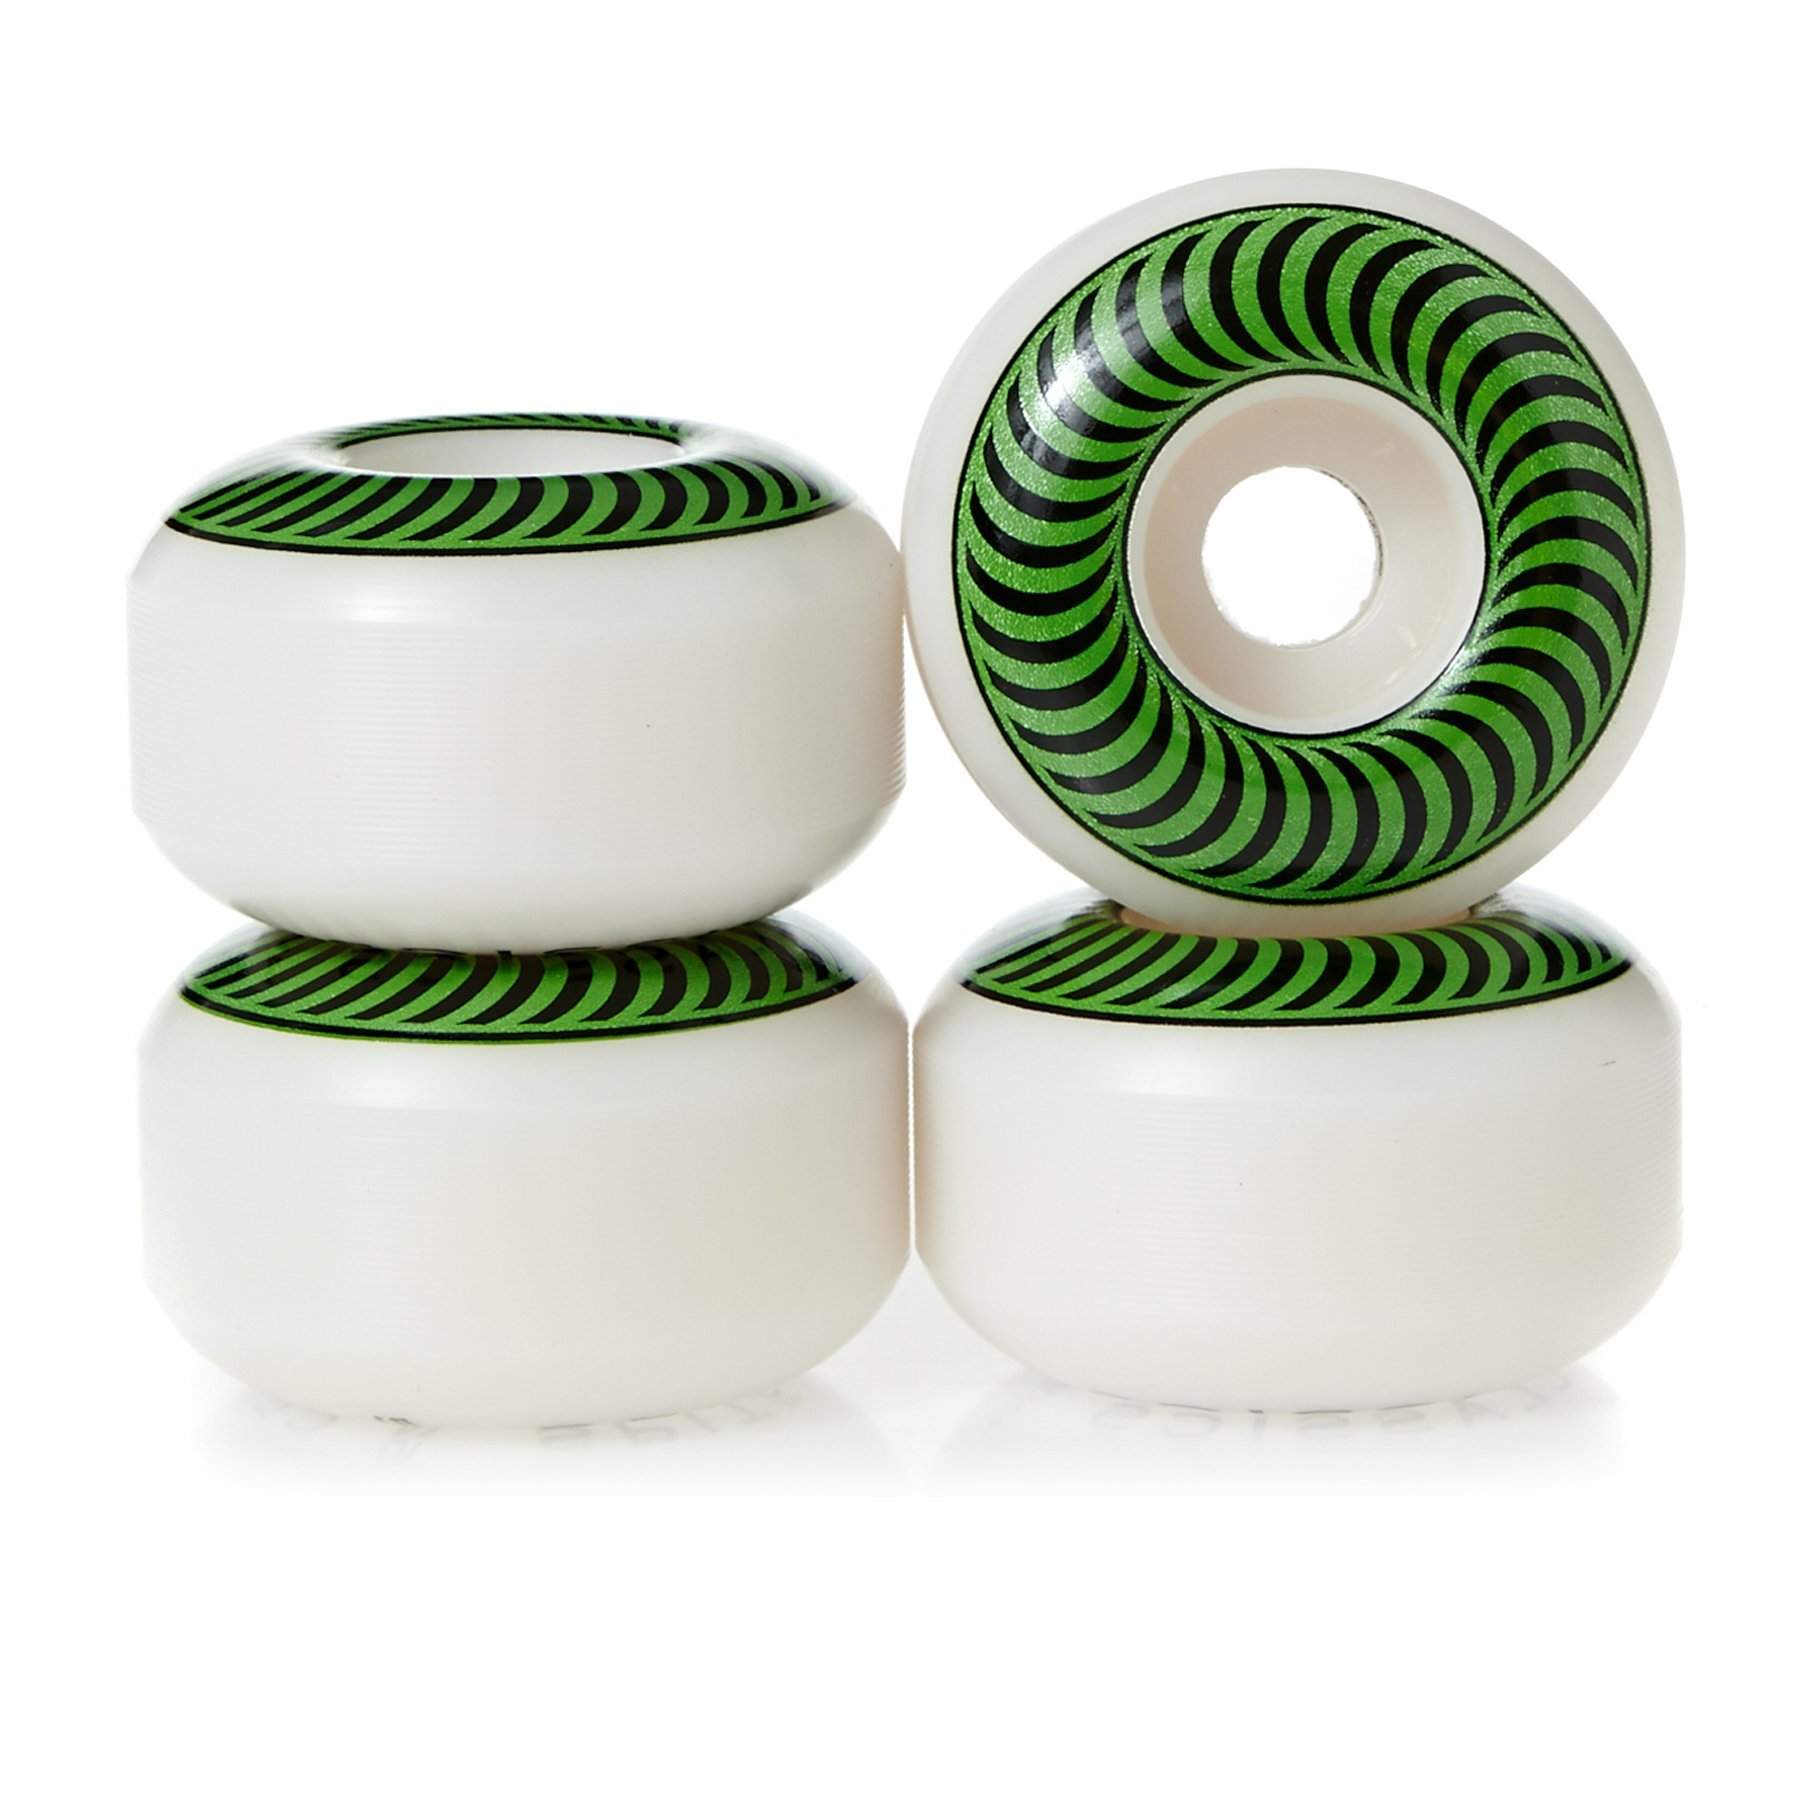 Spitfire Classic Series High Performance Skateboard Wheel (Set of 4) (White, 52 MM) by Spitfire